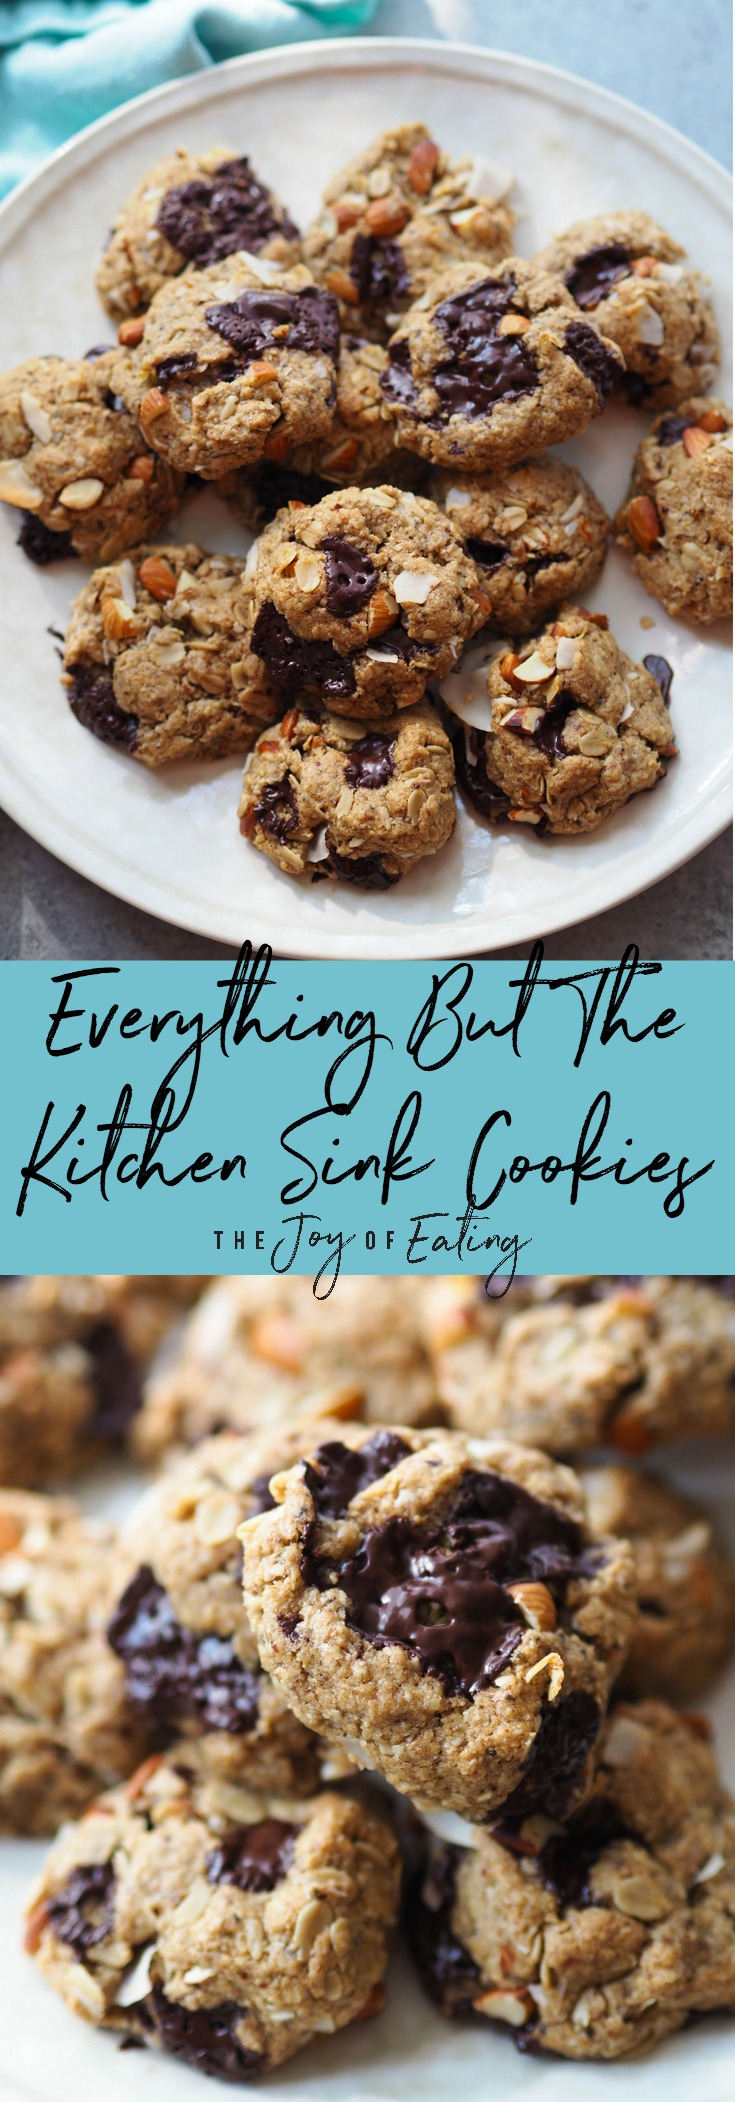 Everything but the kitchen sink cookies are loaded with crunchy almonds, dark chocolate, toasted coconut and oats! Gluten free, vegan and made with whole grains! #cookie #glutenfree #vegan #wholegrain #snack #dessert #baking